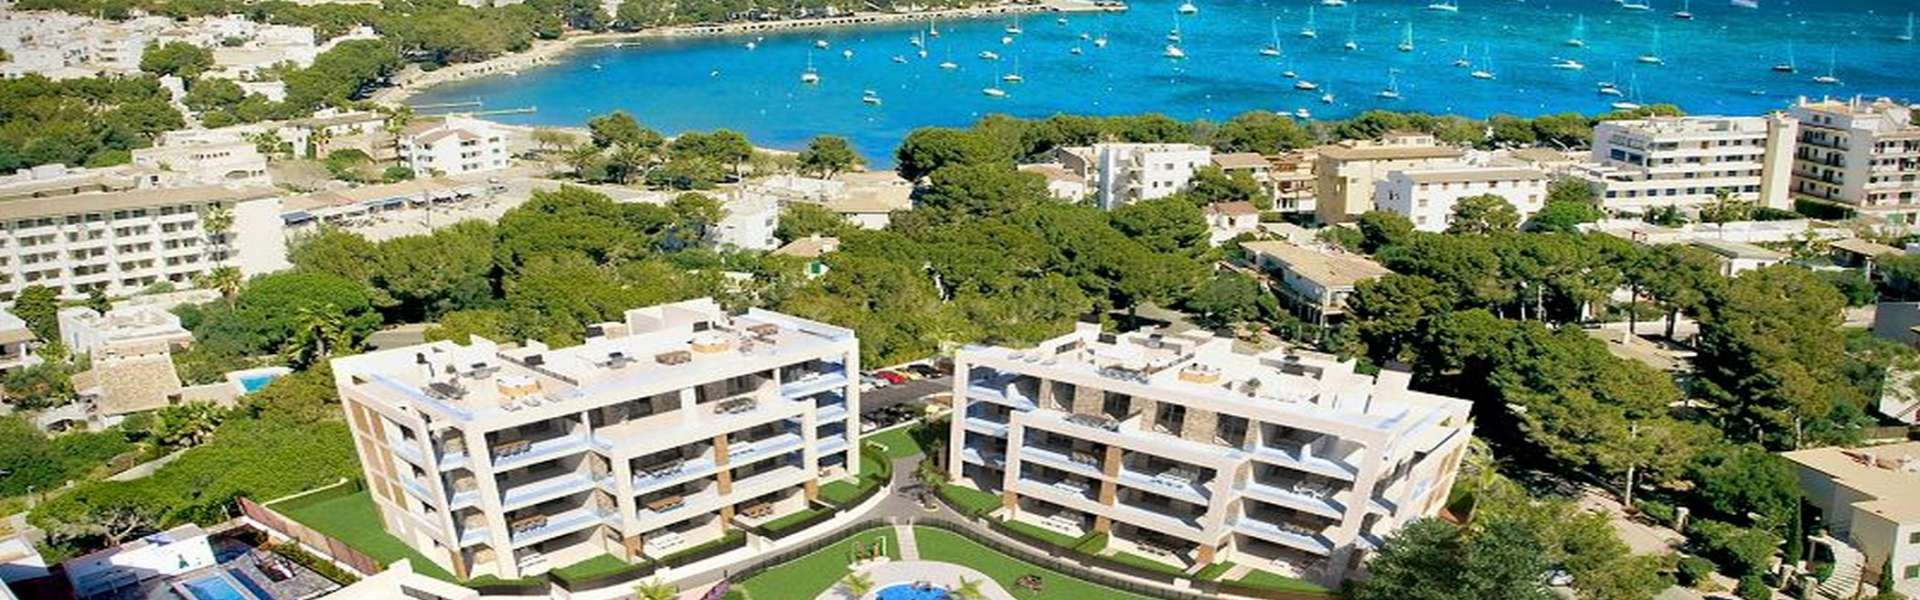 Exclusive penthouse apartments for sale in Portocolom